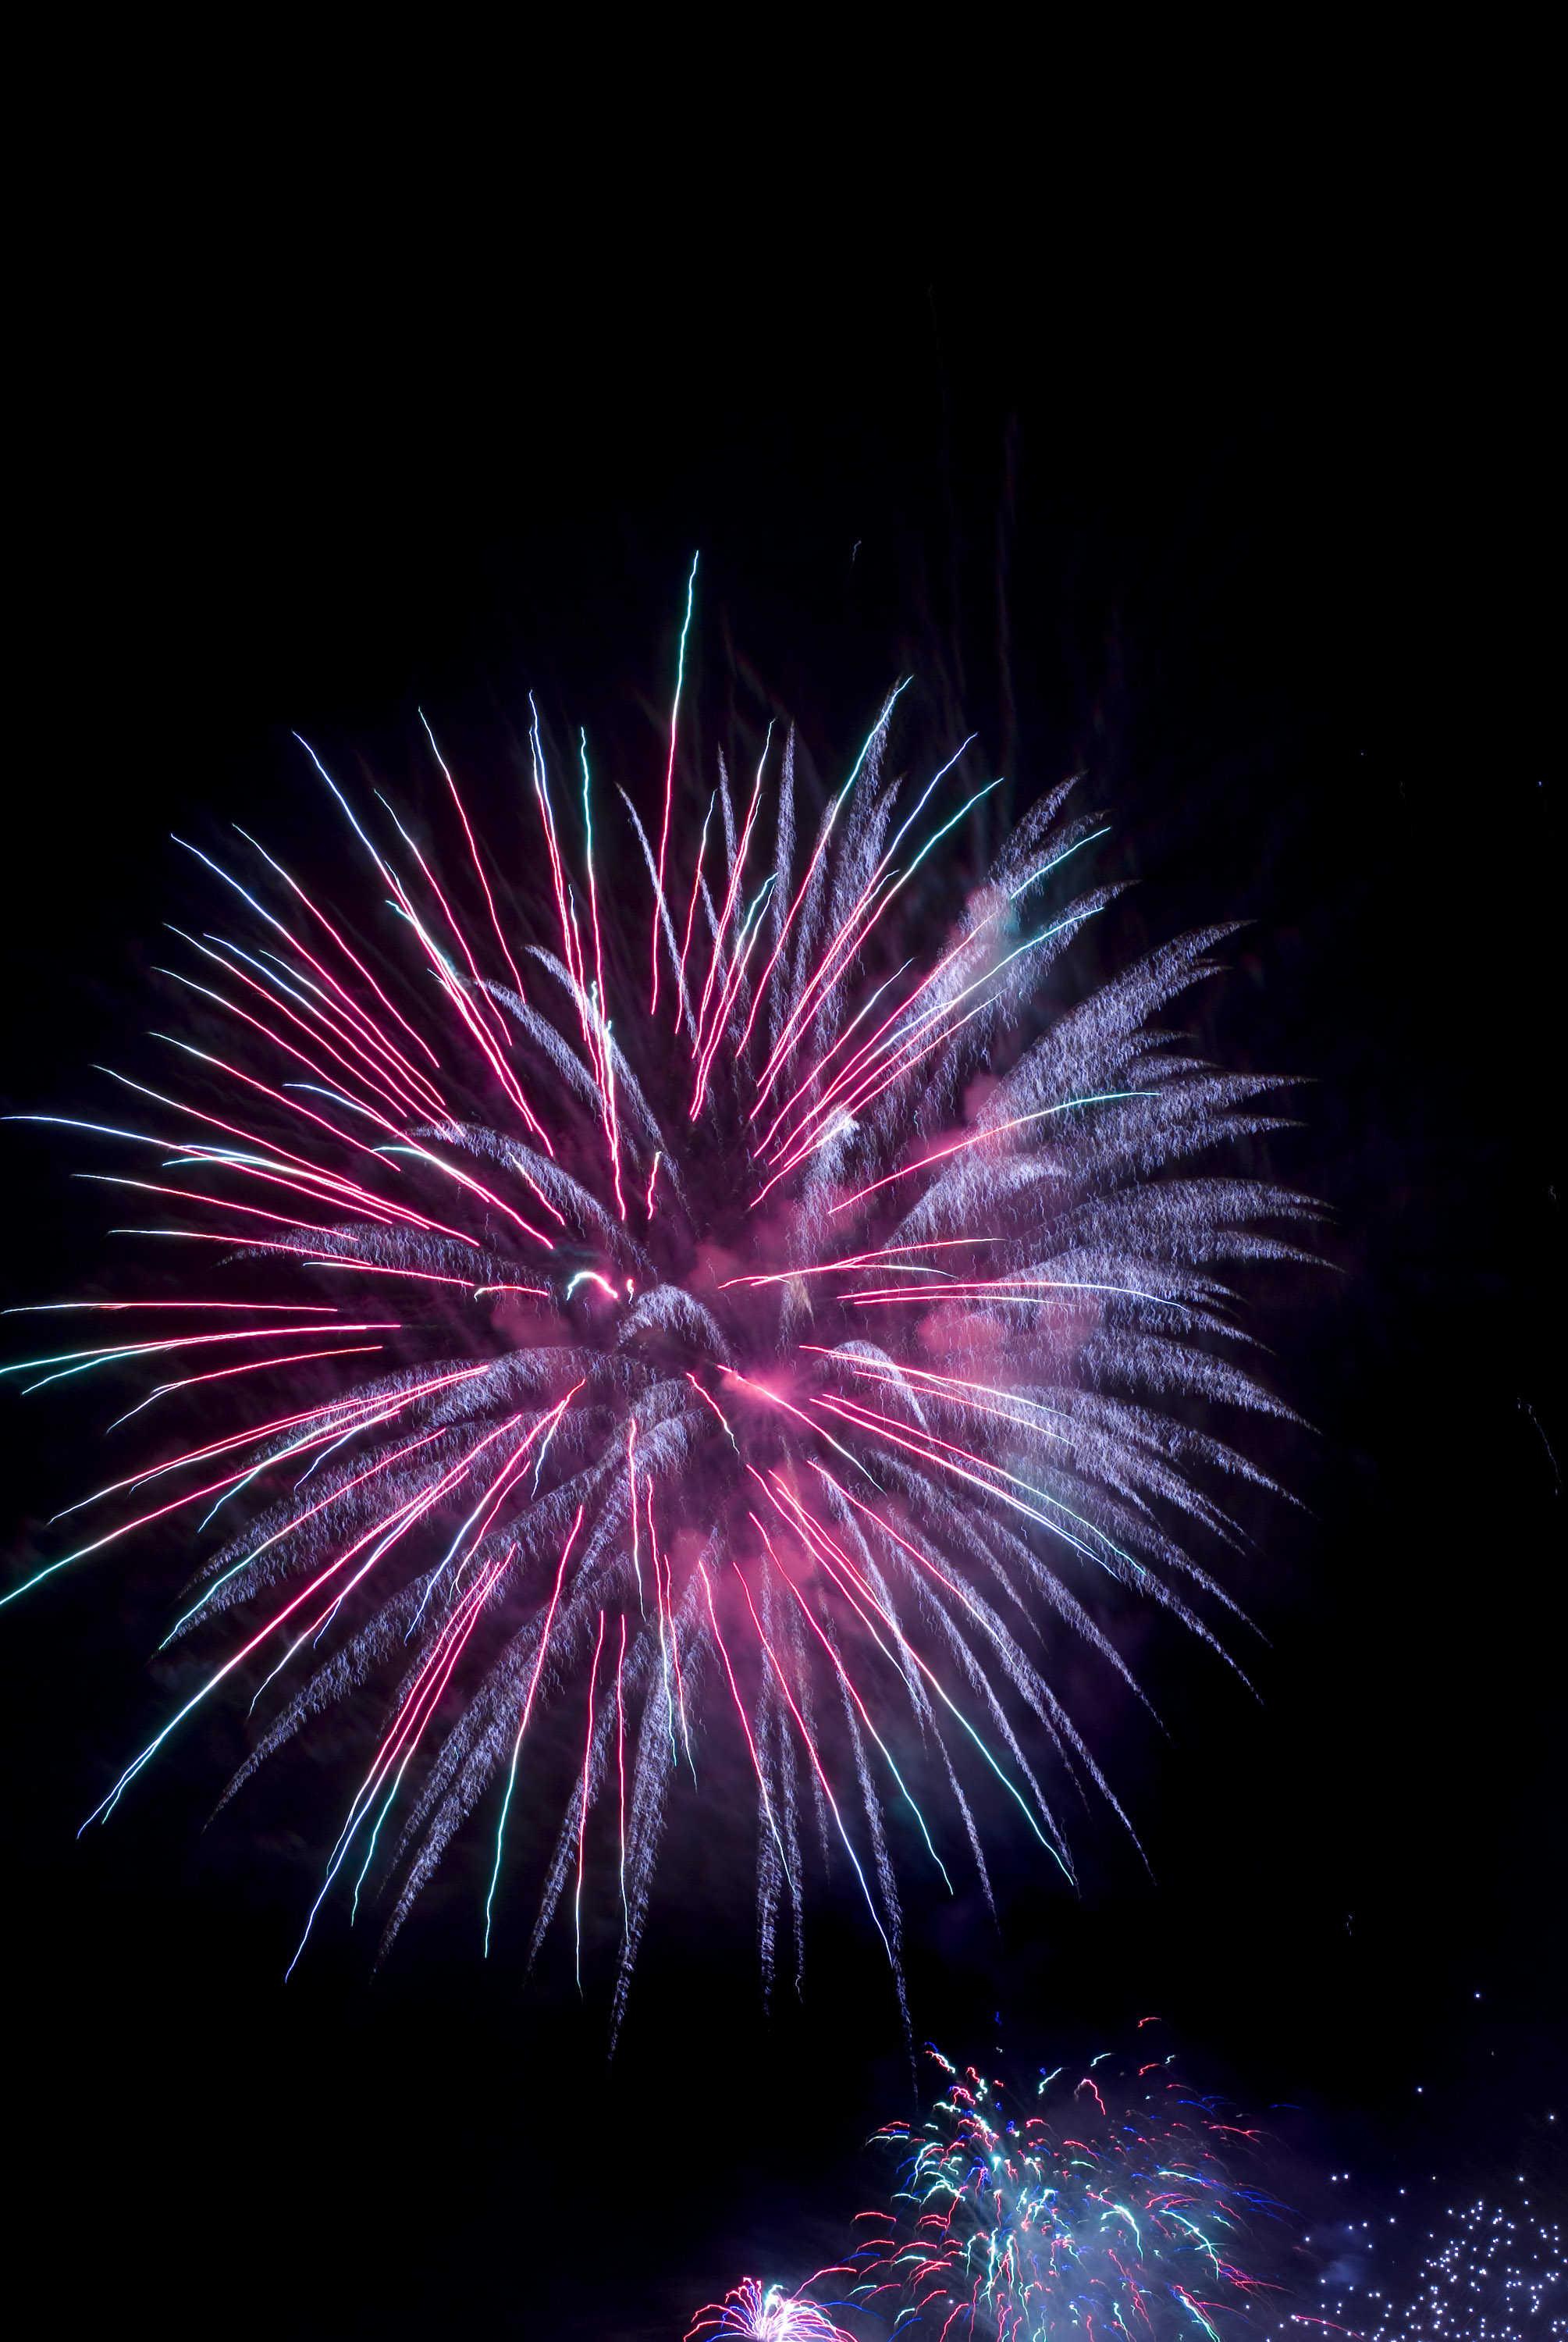 Image of fireworks downloaded from http://christmasstockimages.com/free/new_year/slides/fireworks_skyburst.htm